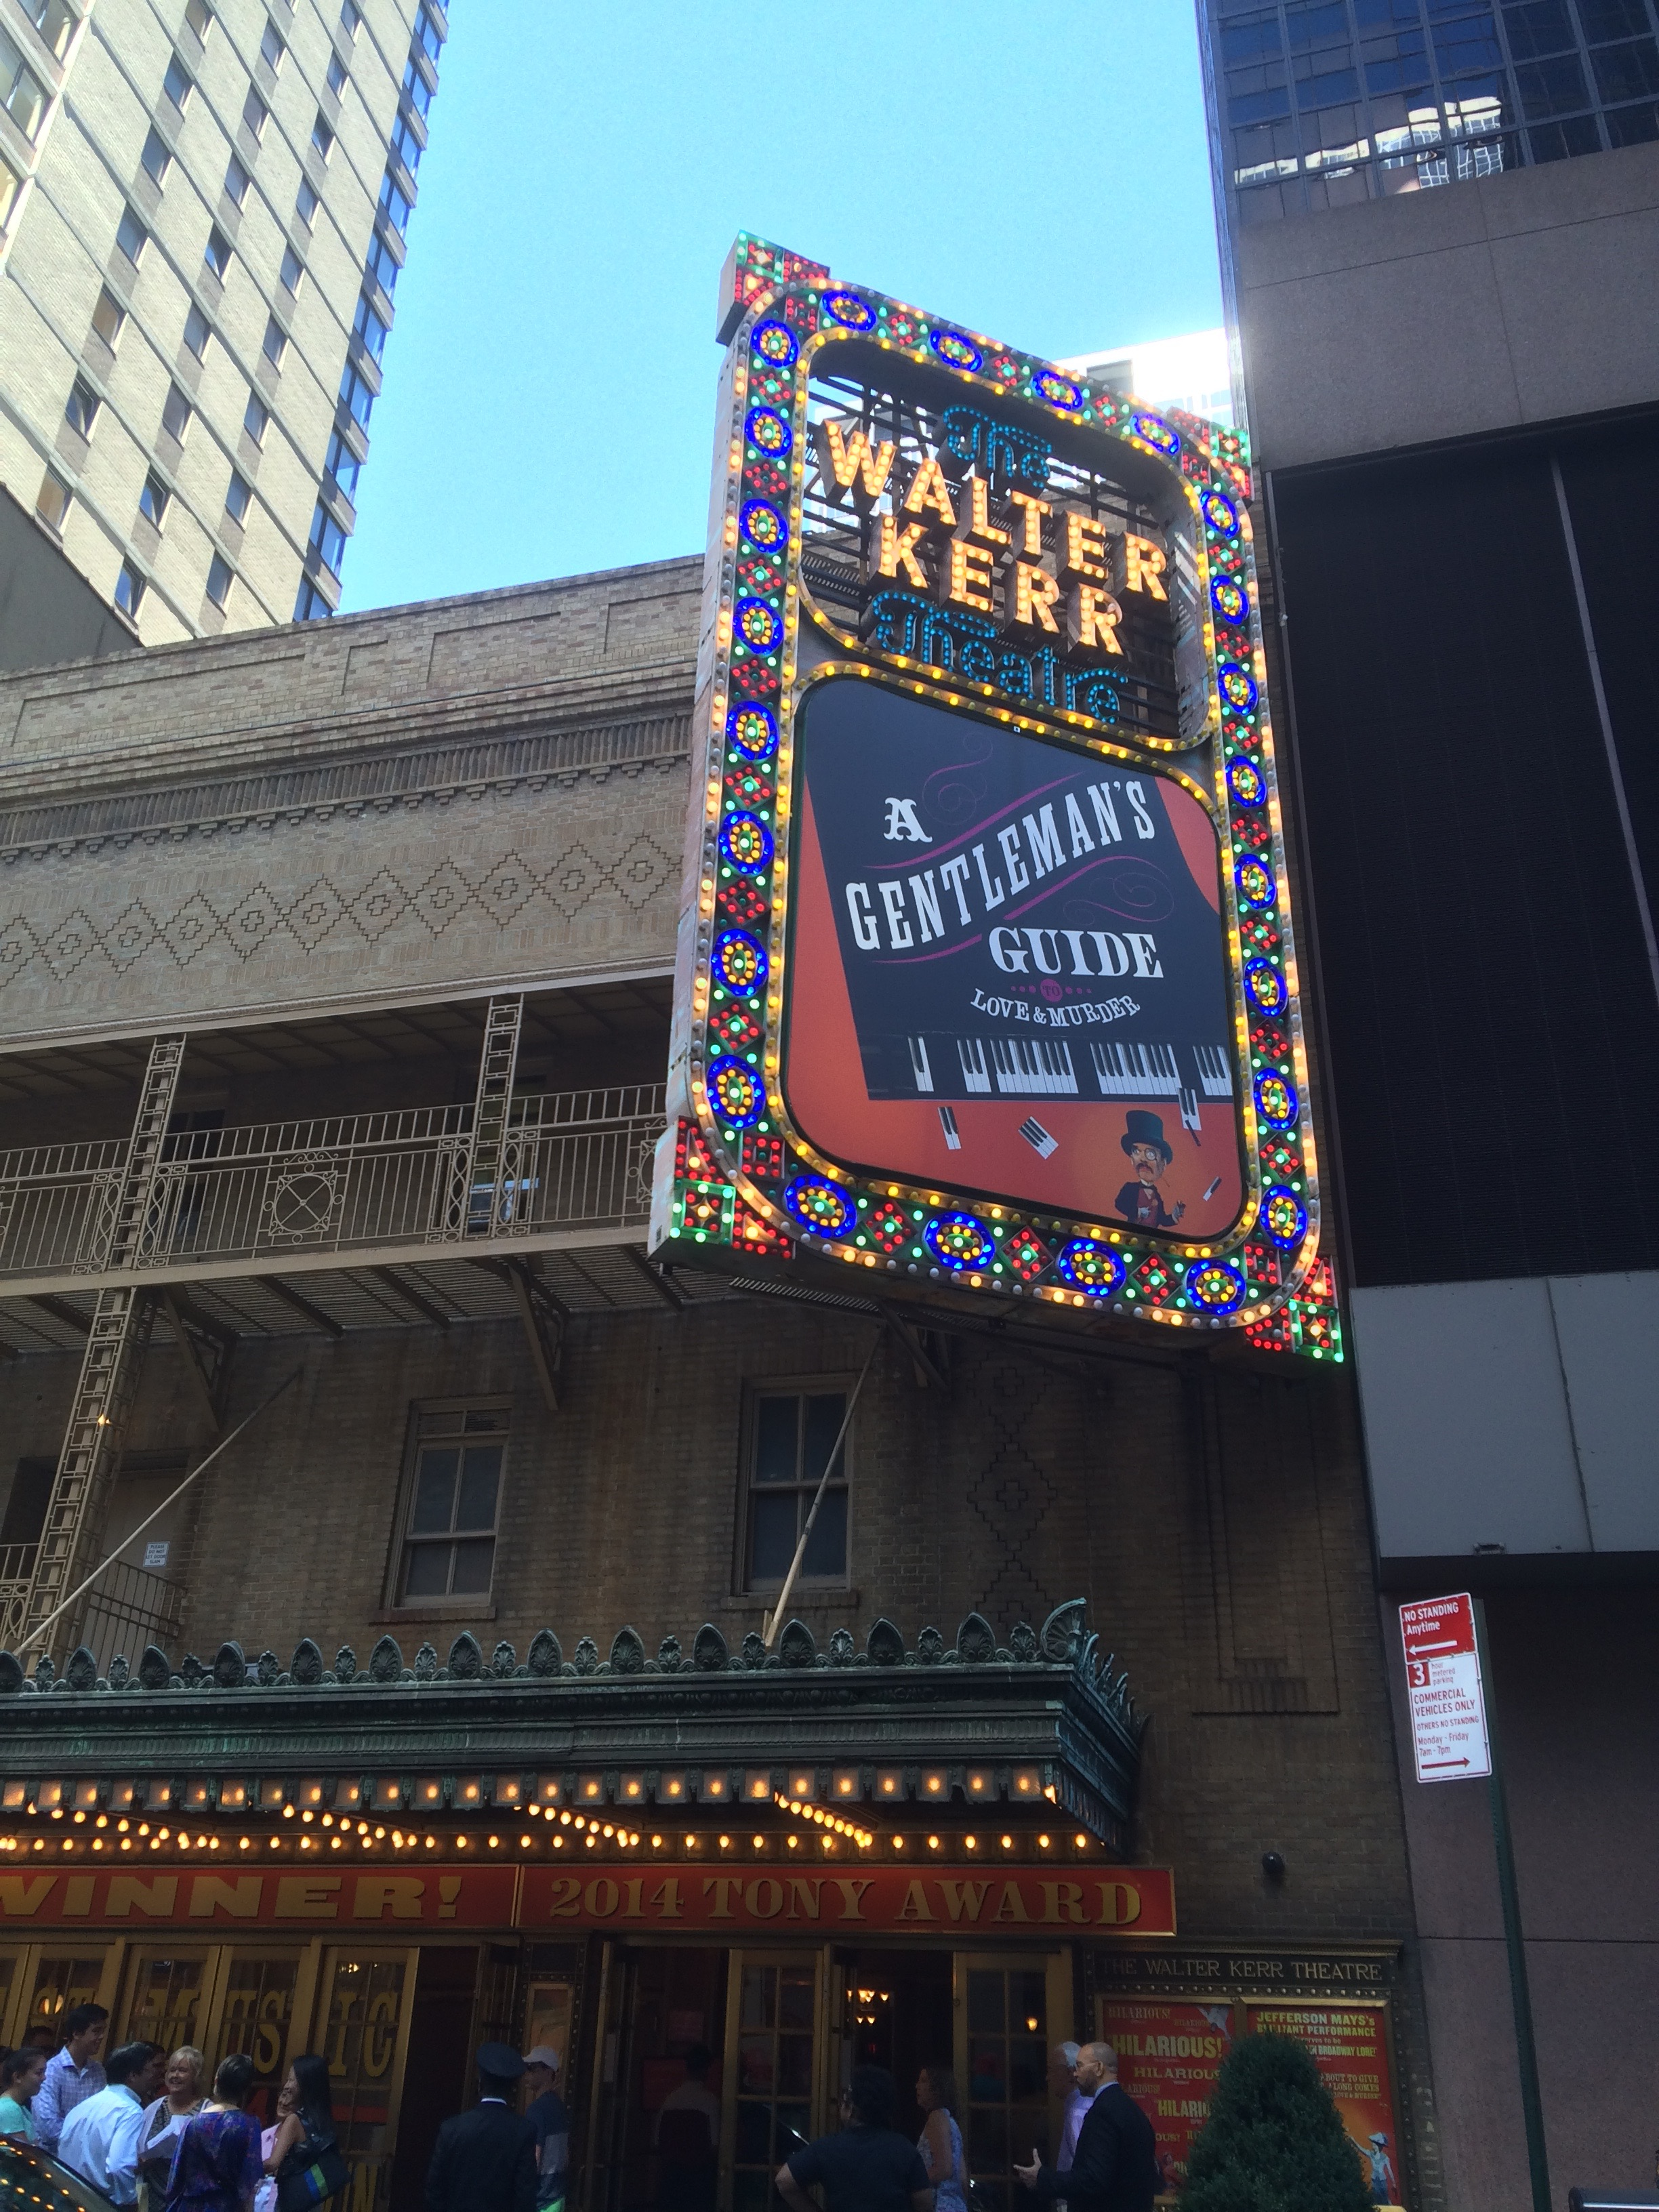 A Gentleman's Guide marquee at the Walter Kerr Theatre.